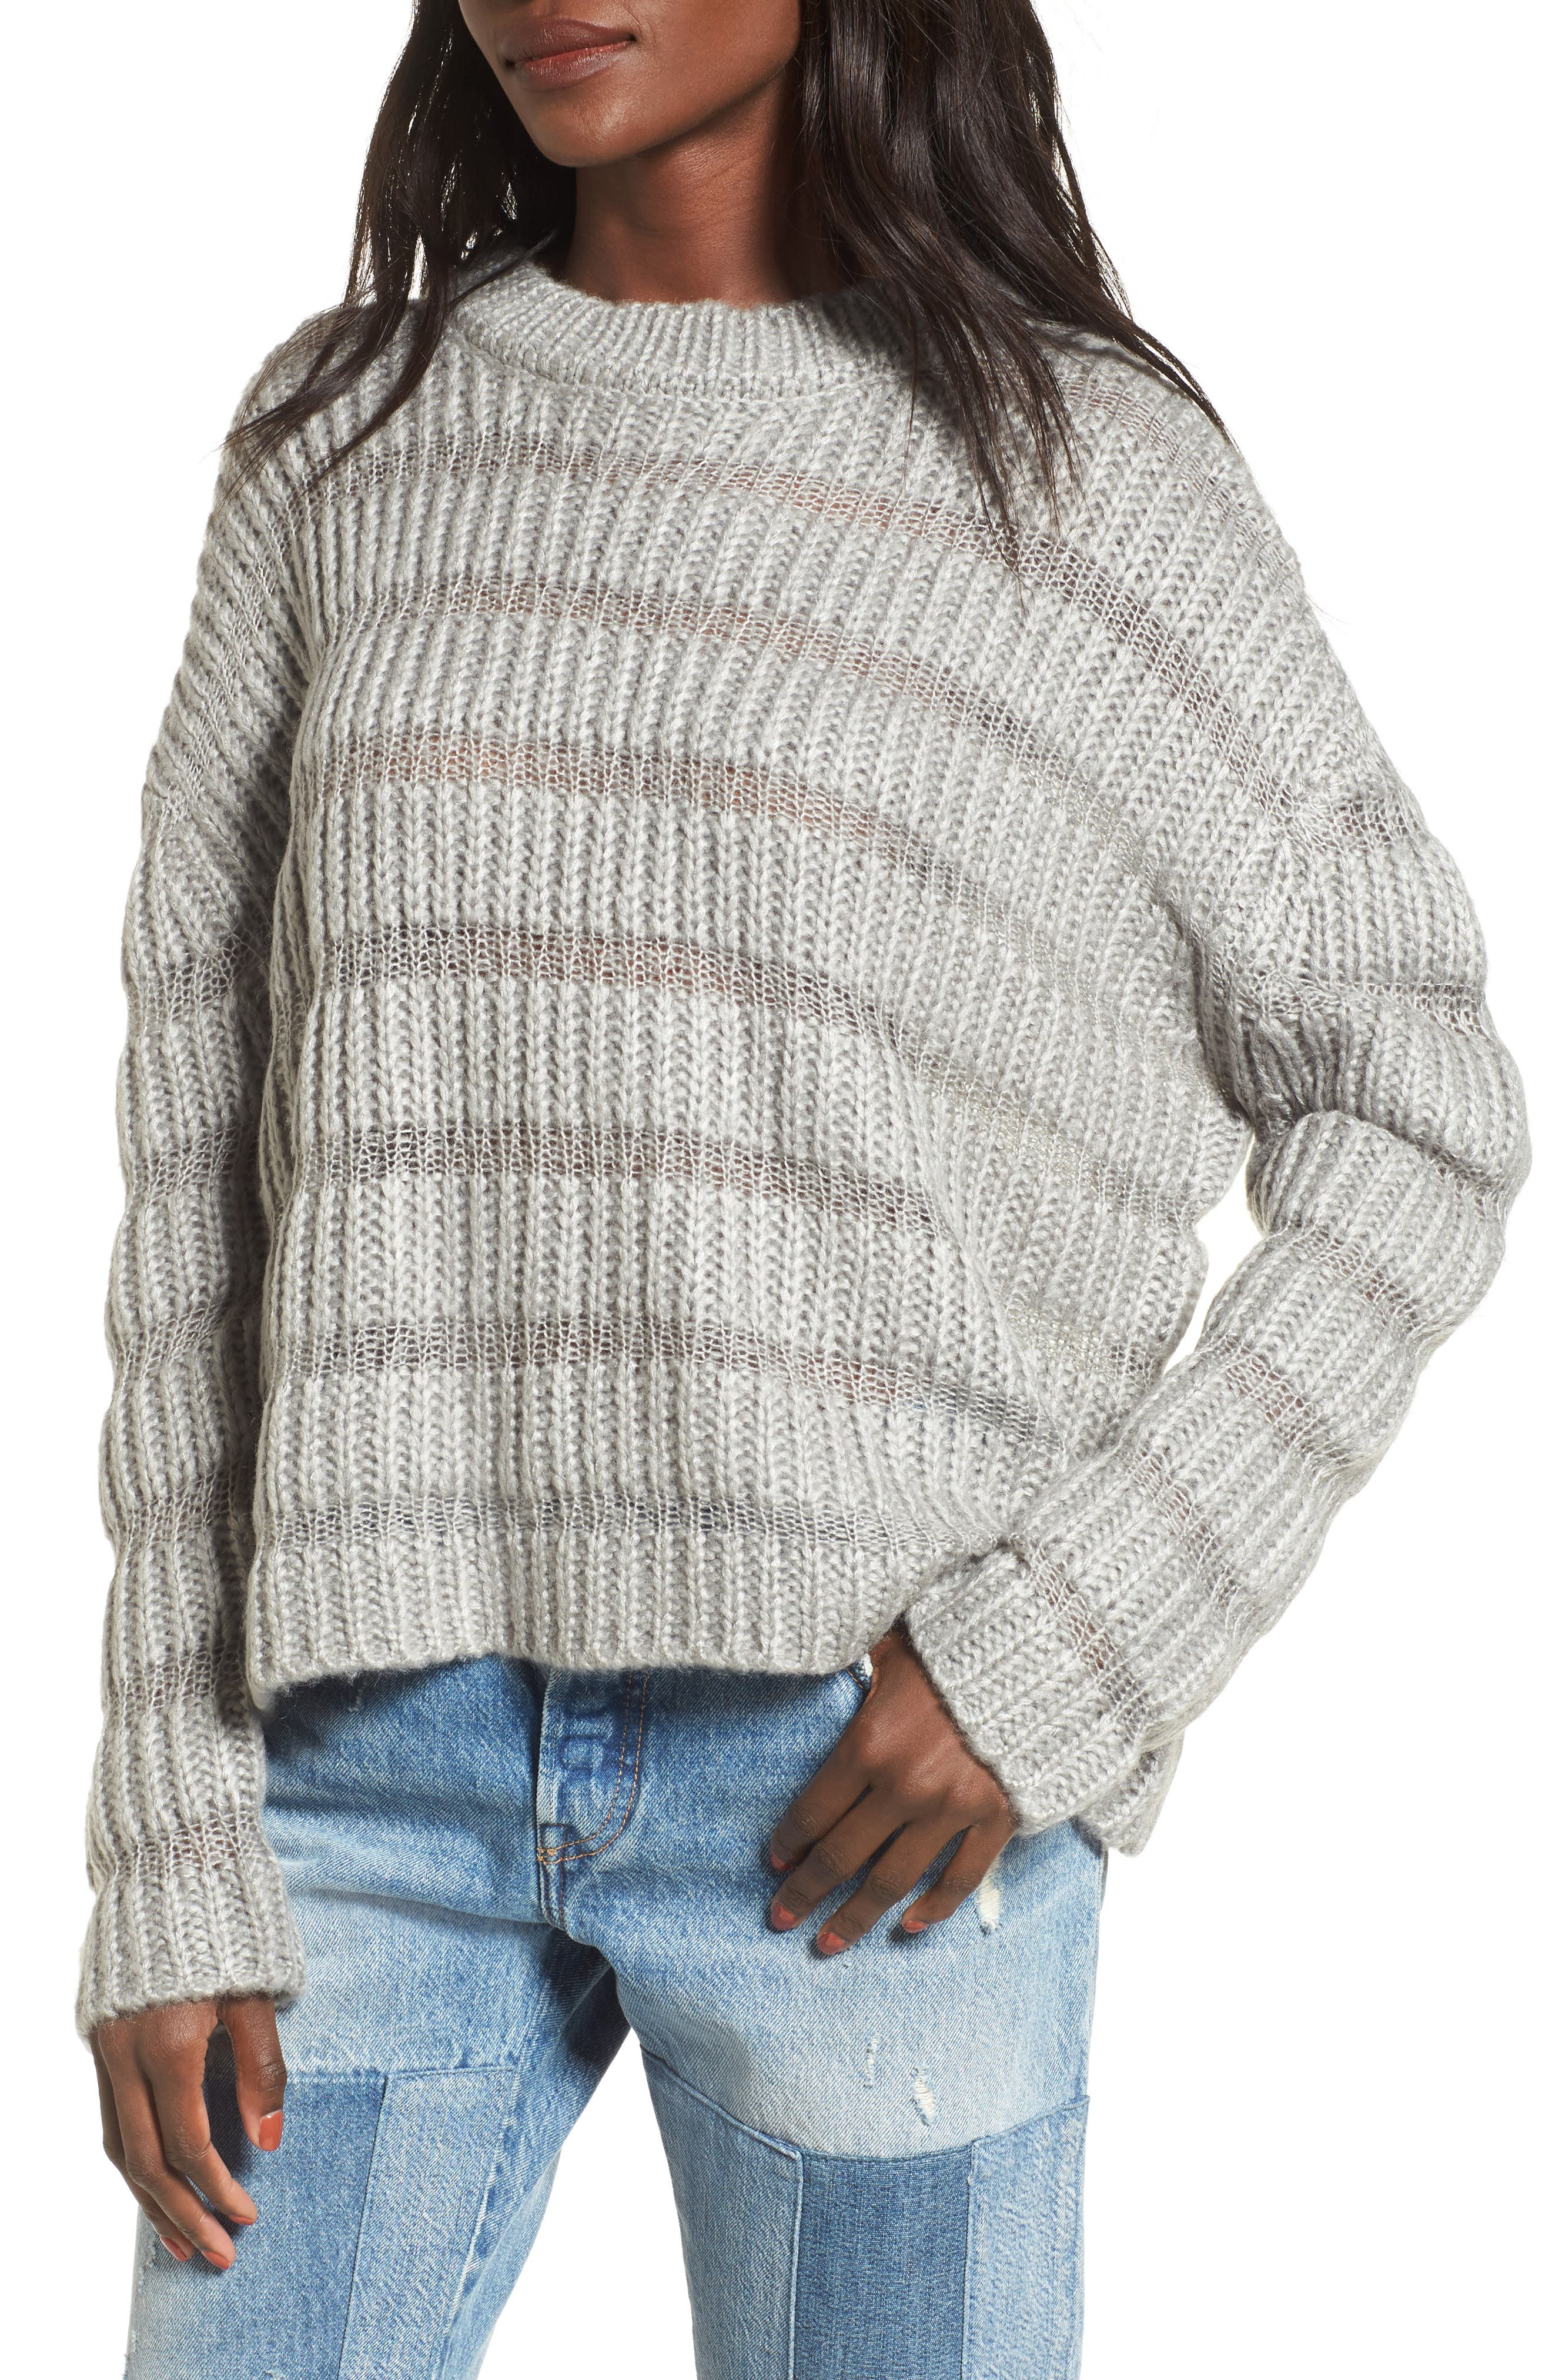 Alternate Image 1 Selected - Moon River Textured Stripe Crop Sweater